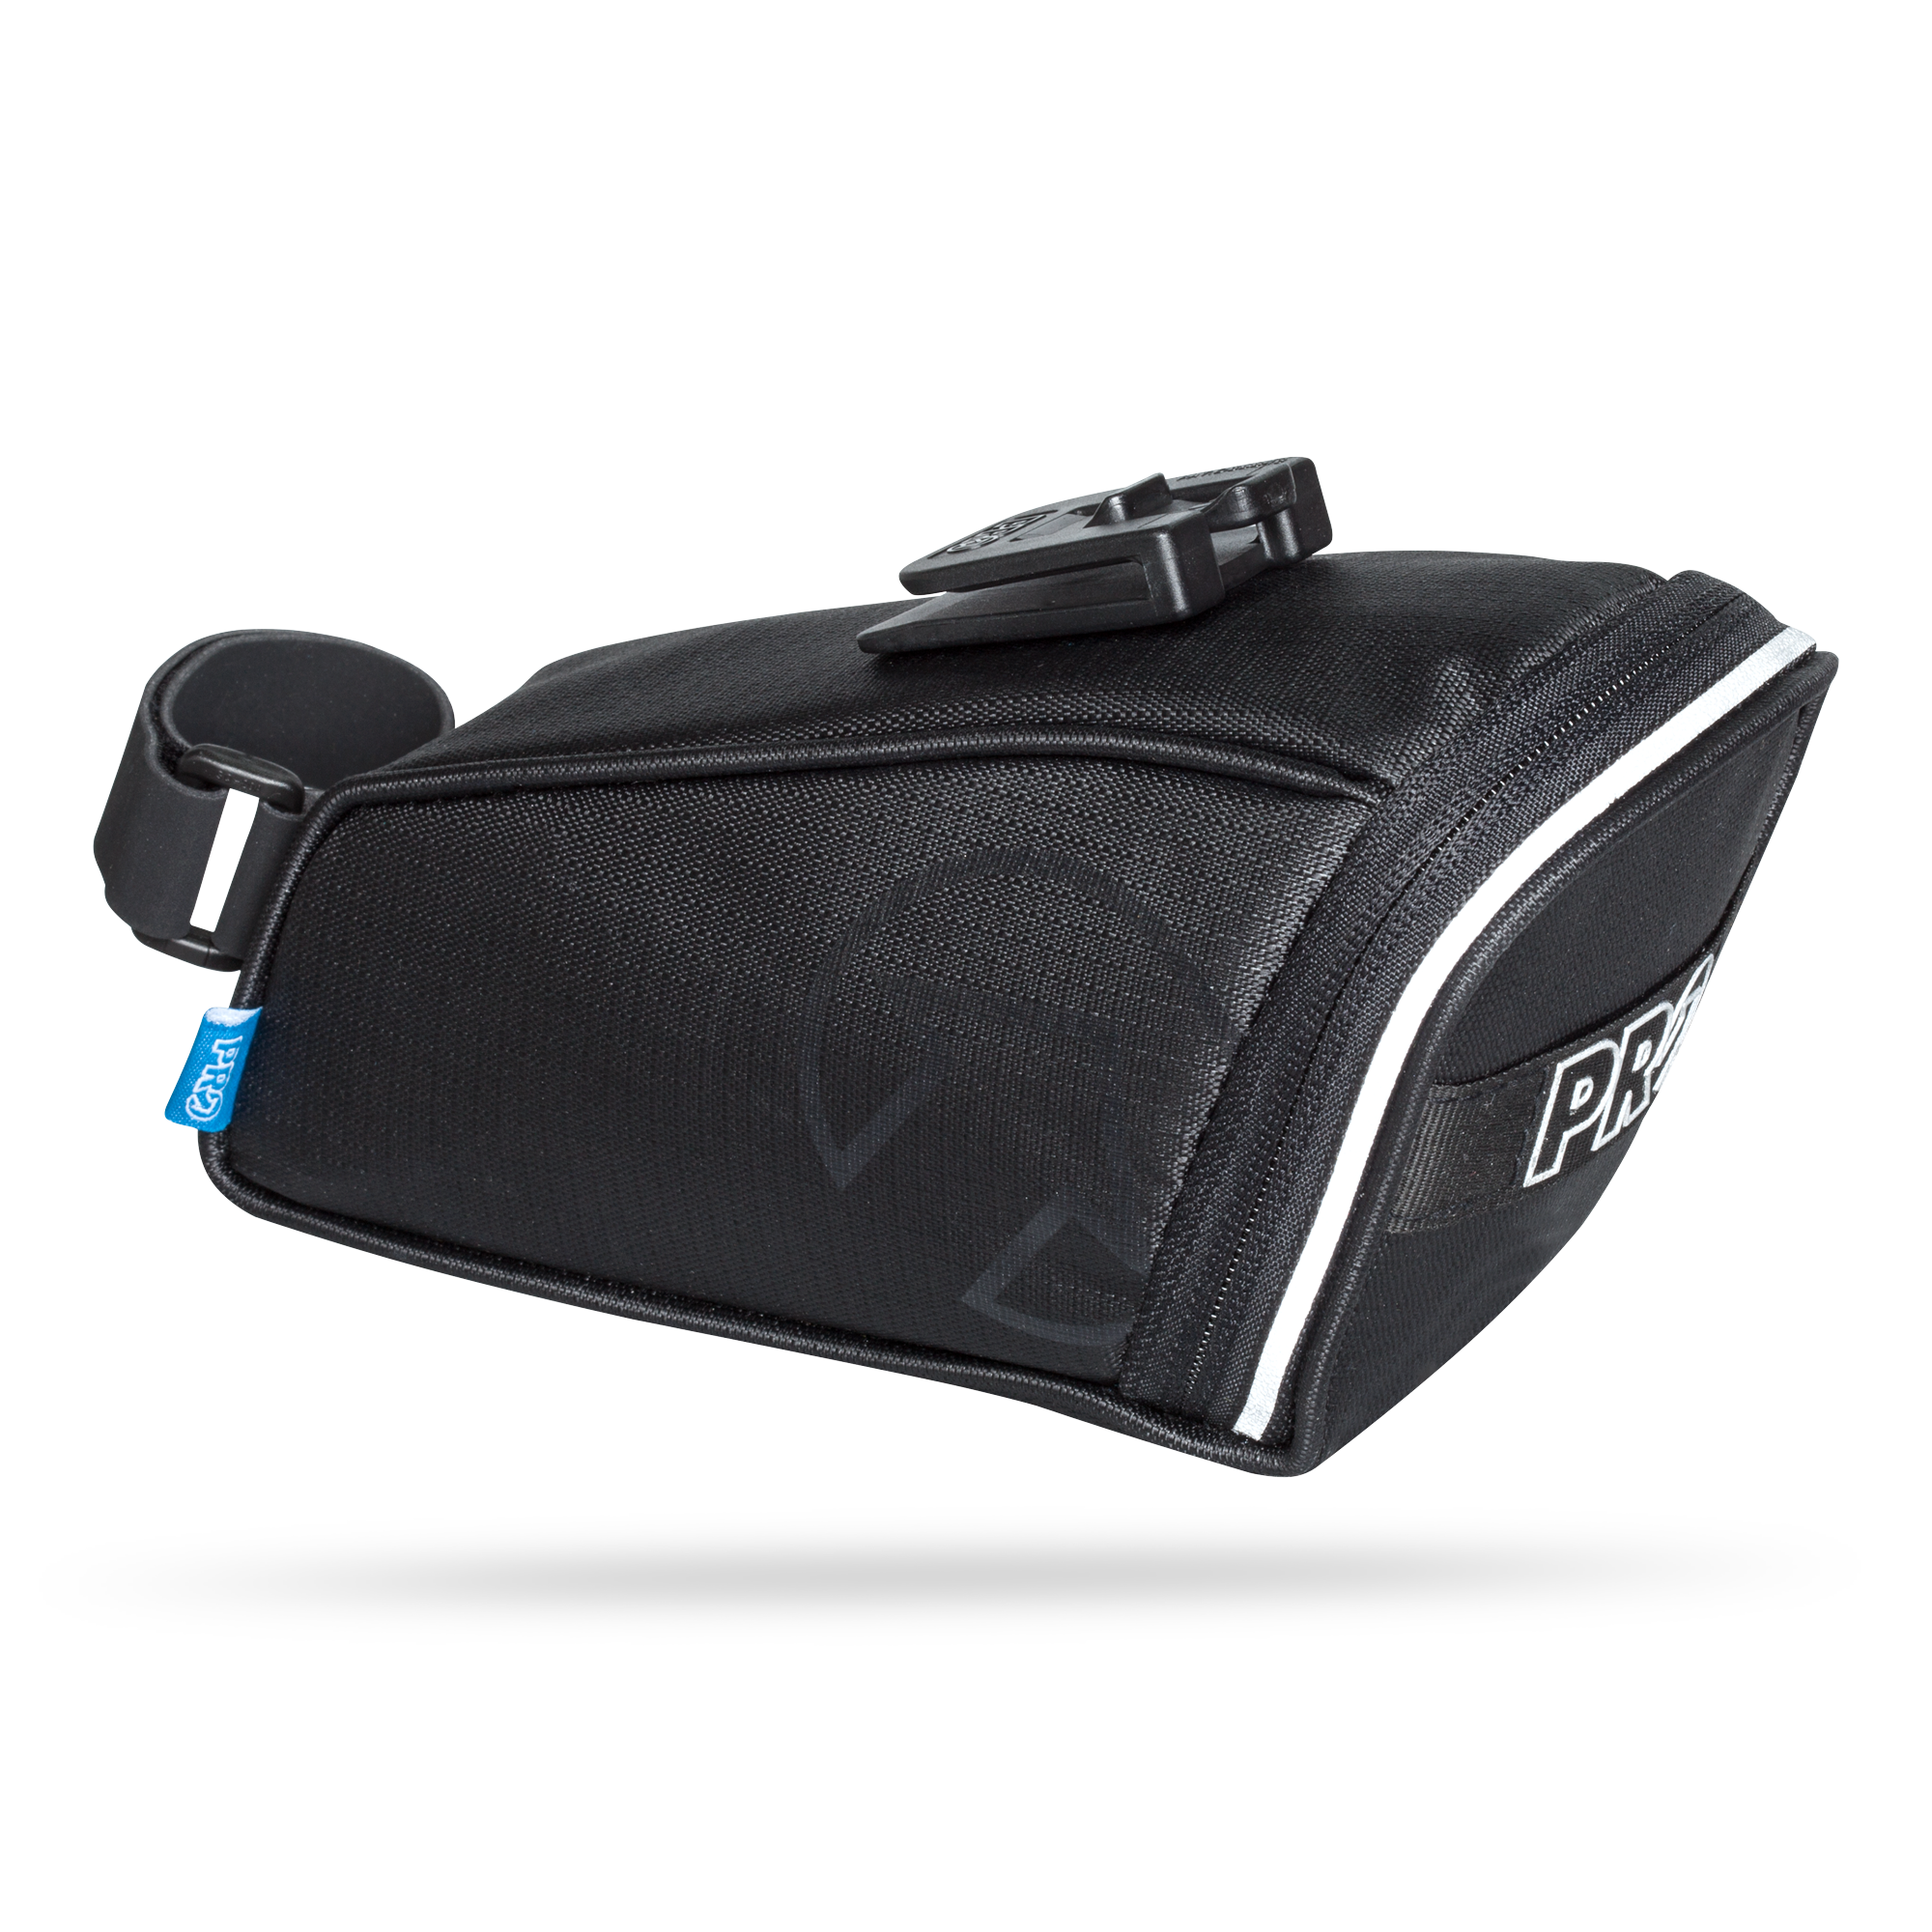 QR Saddlebag Mini / Medi / Maxi / Maxi Plus